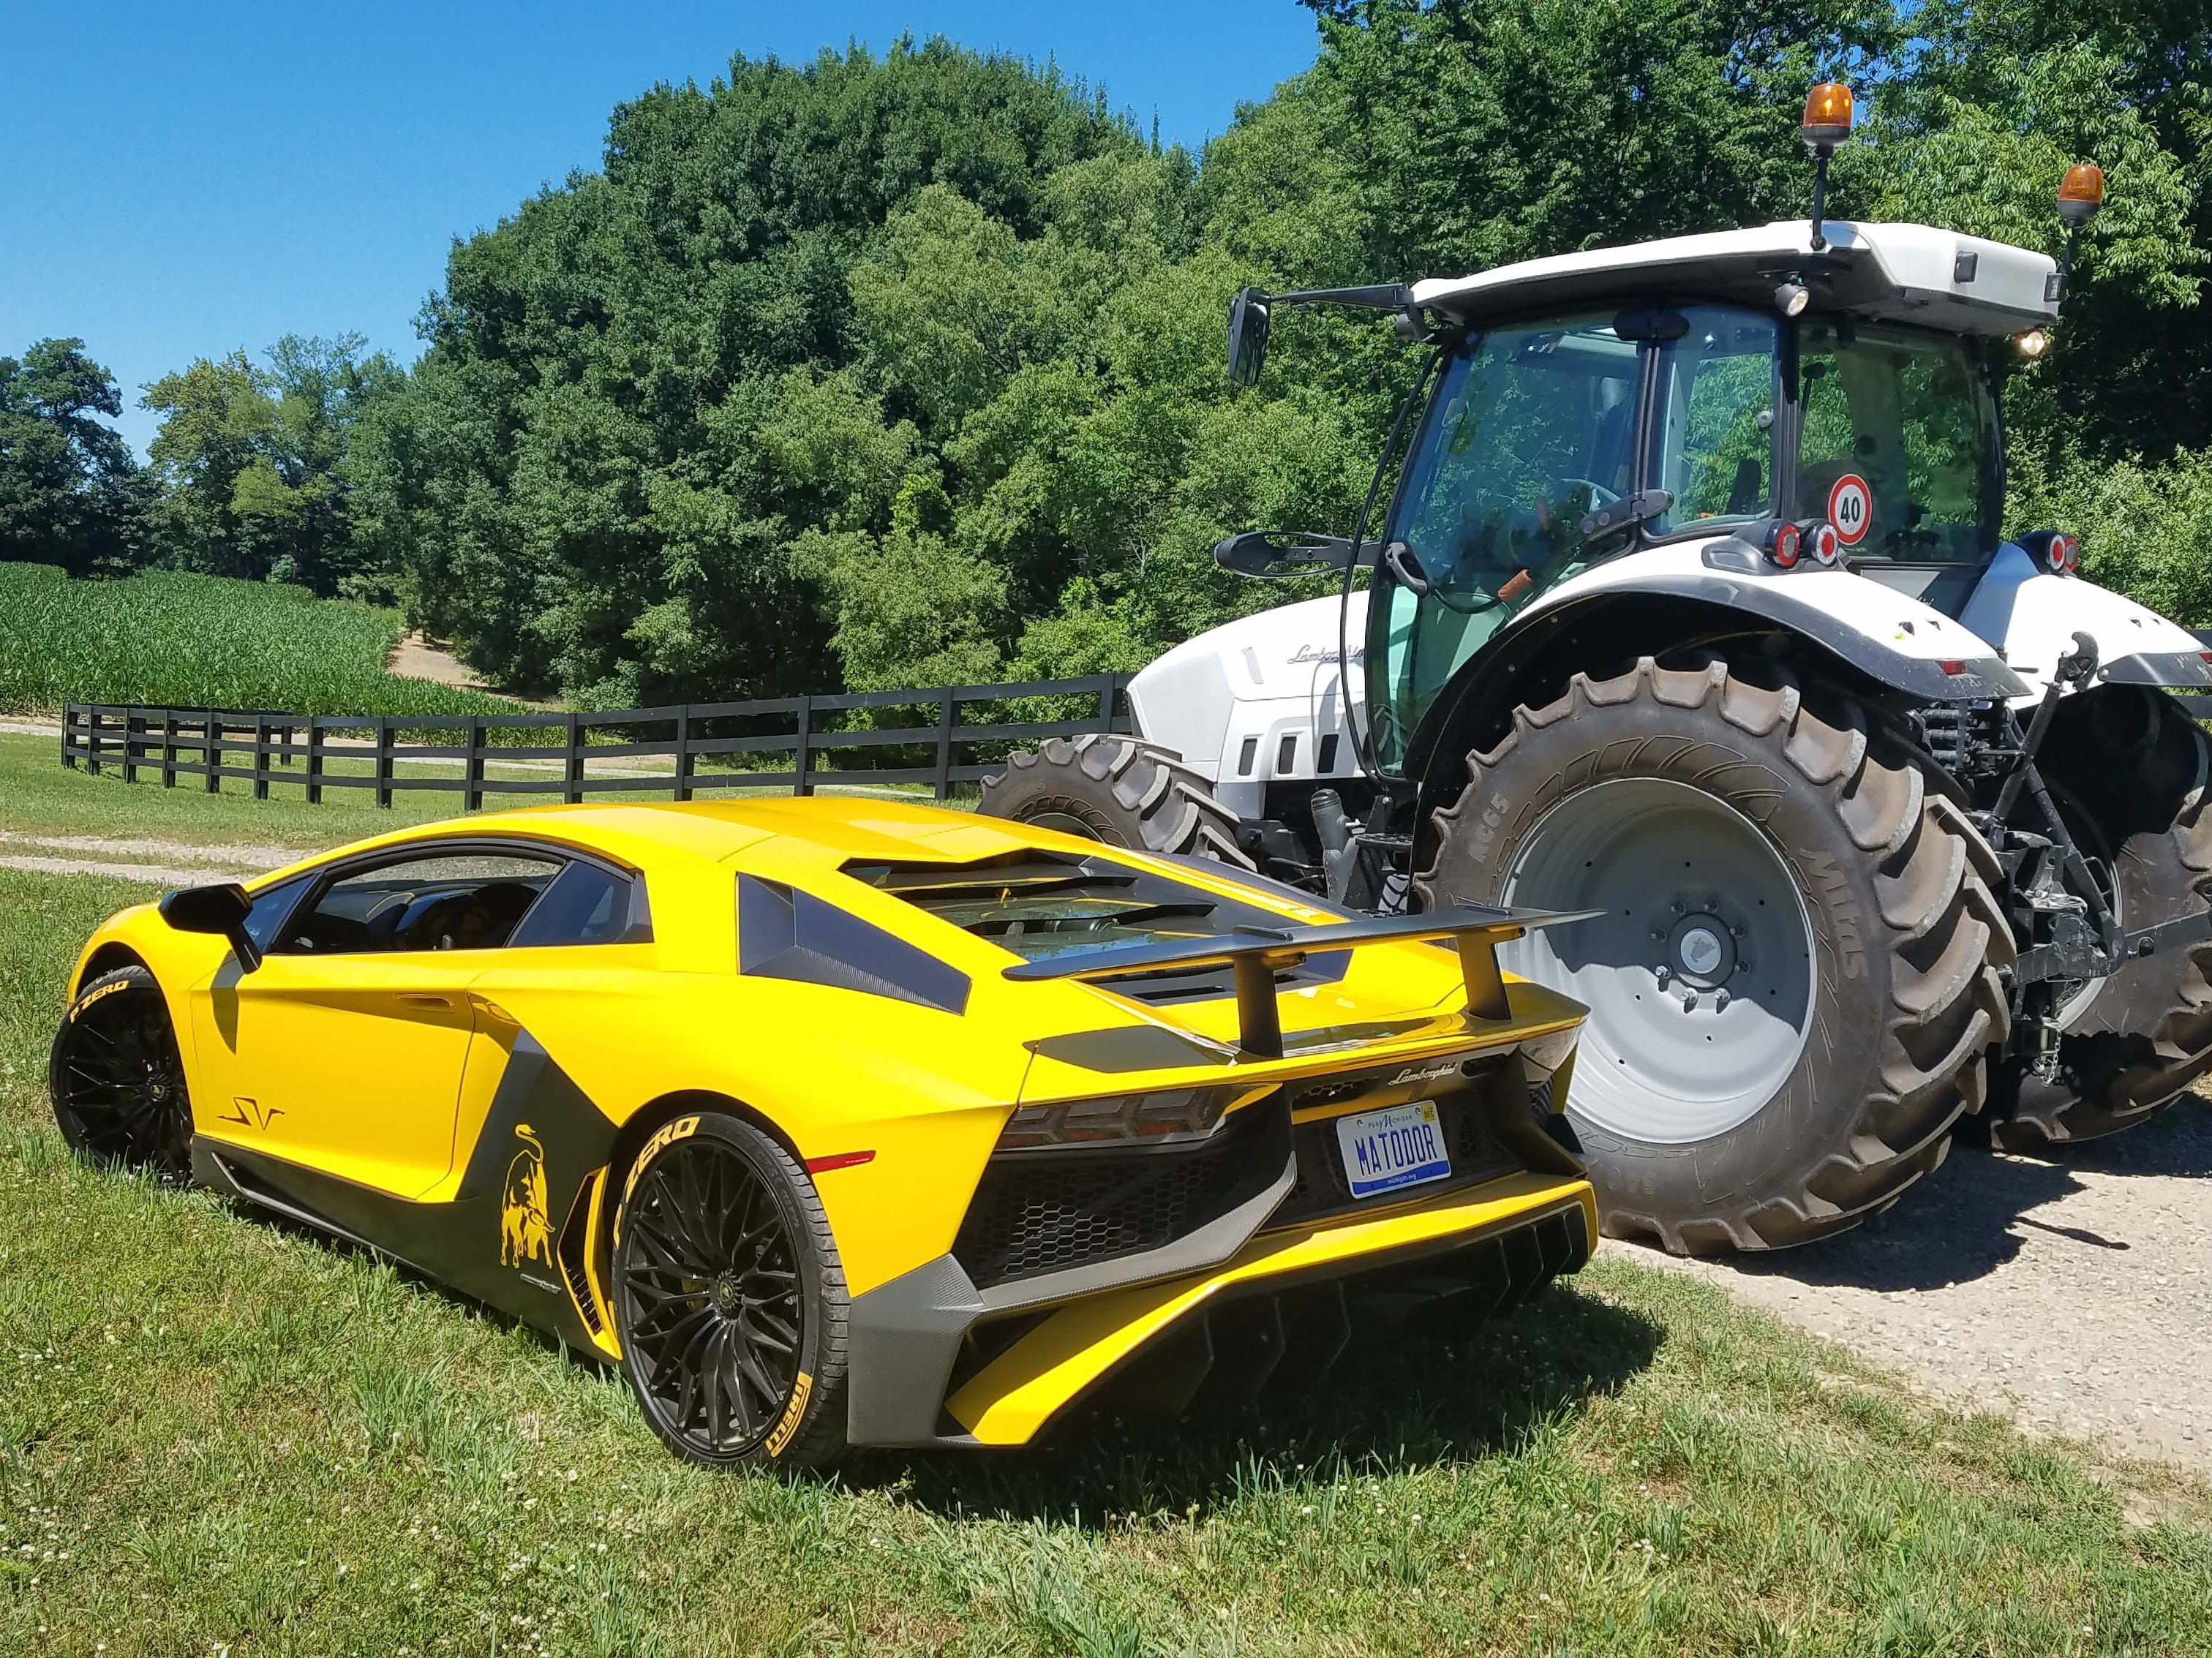 Separated at birth? The Lamborghini Aventador SV, left, is a track-focused, 217-mph hellion with poor visibility. The Lamborghini Nitro tractor is a farm-focused, 31-mph worker bee with excellent visibility.